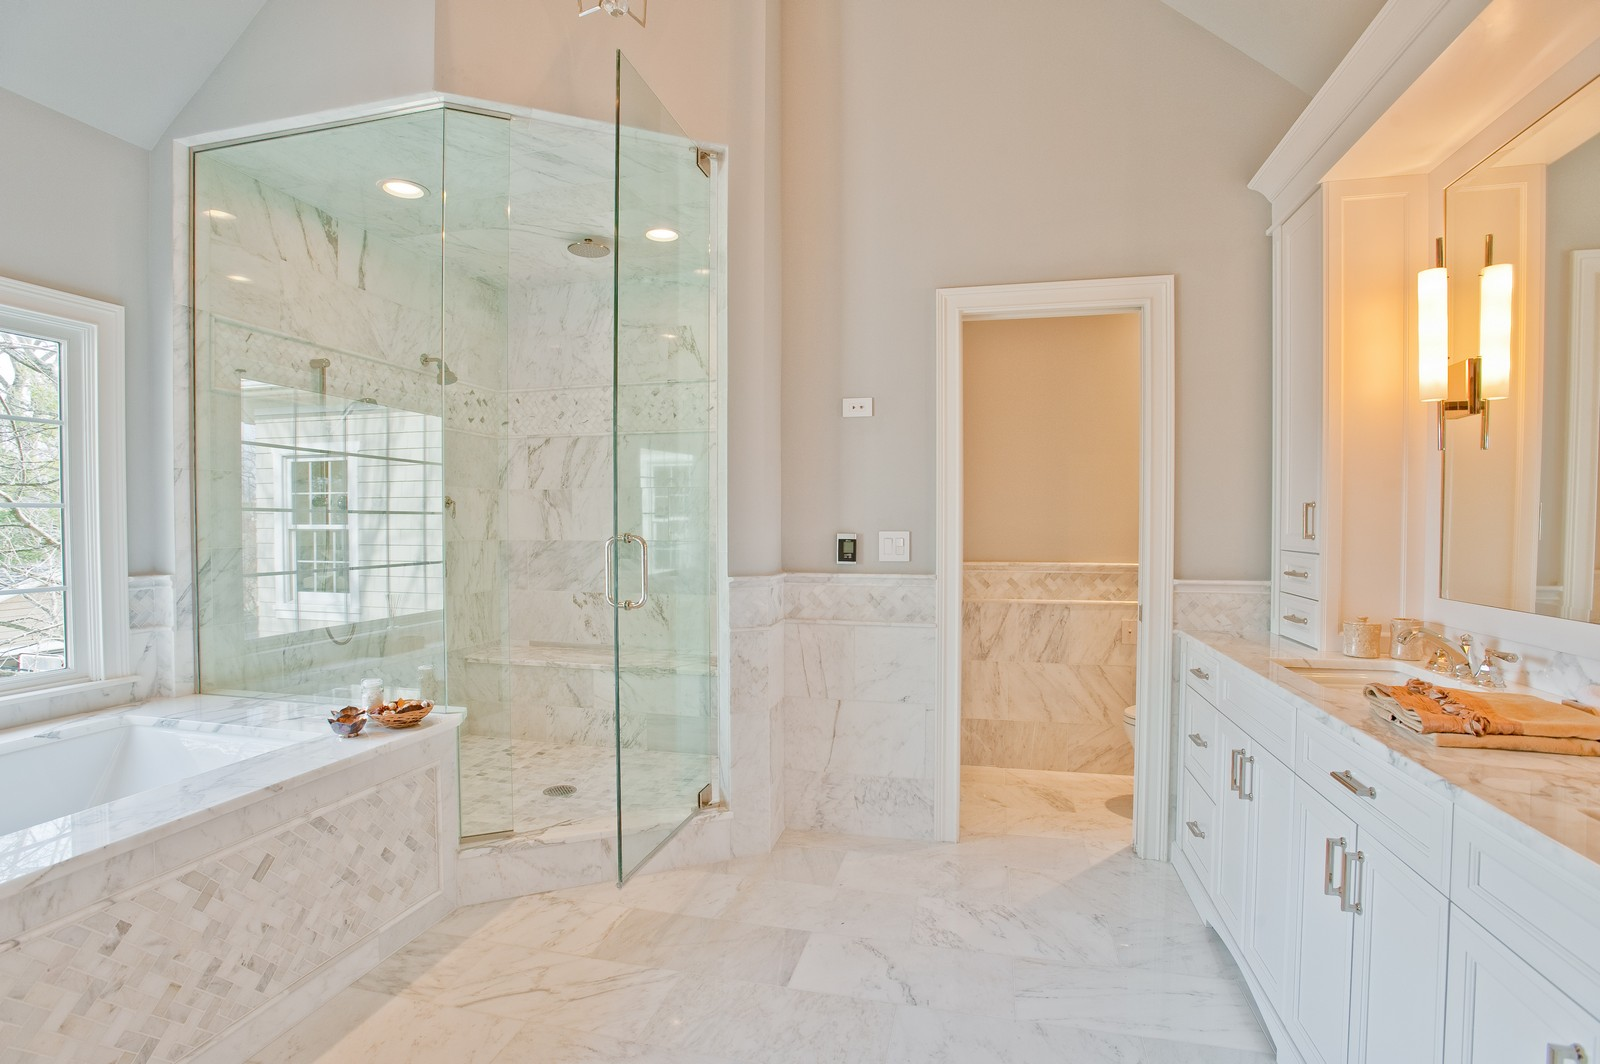 Real Estate Photography - 339 Linden, Winnetka, IL, 60093 - Master Bathroom